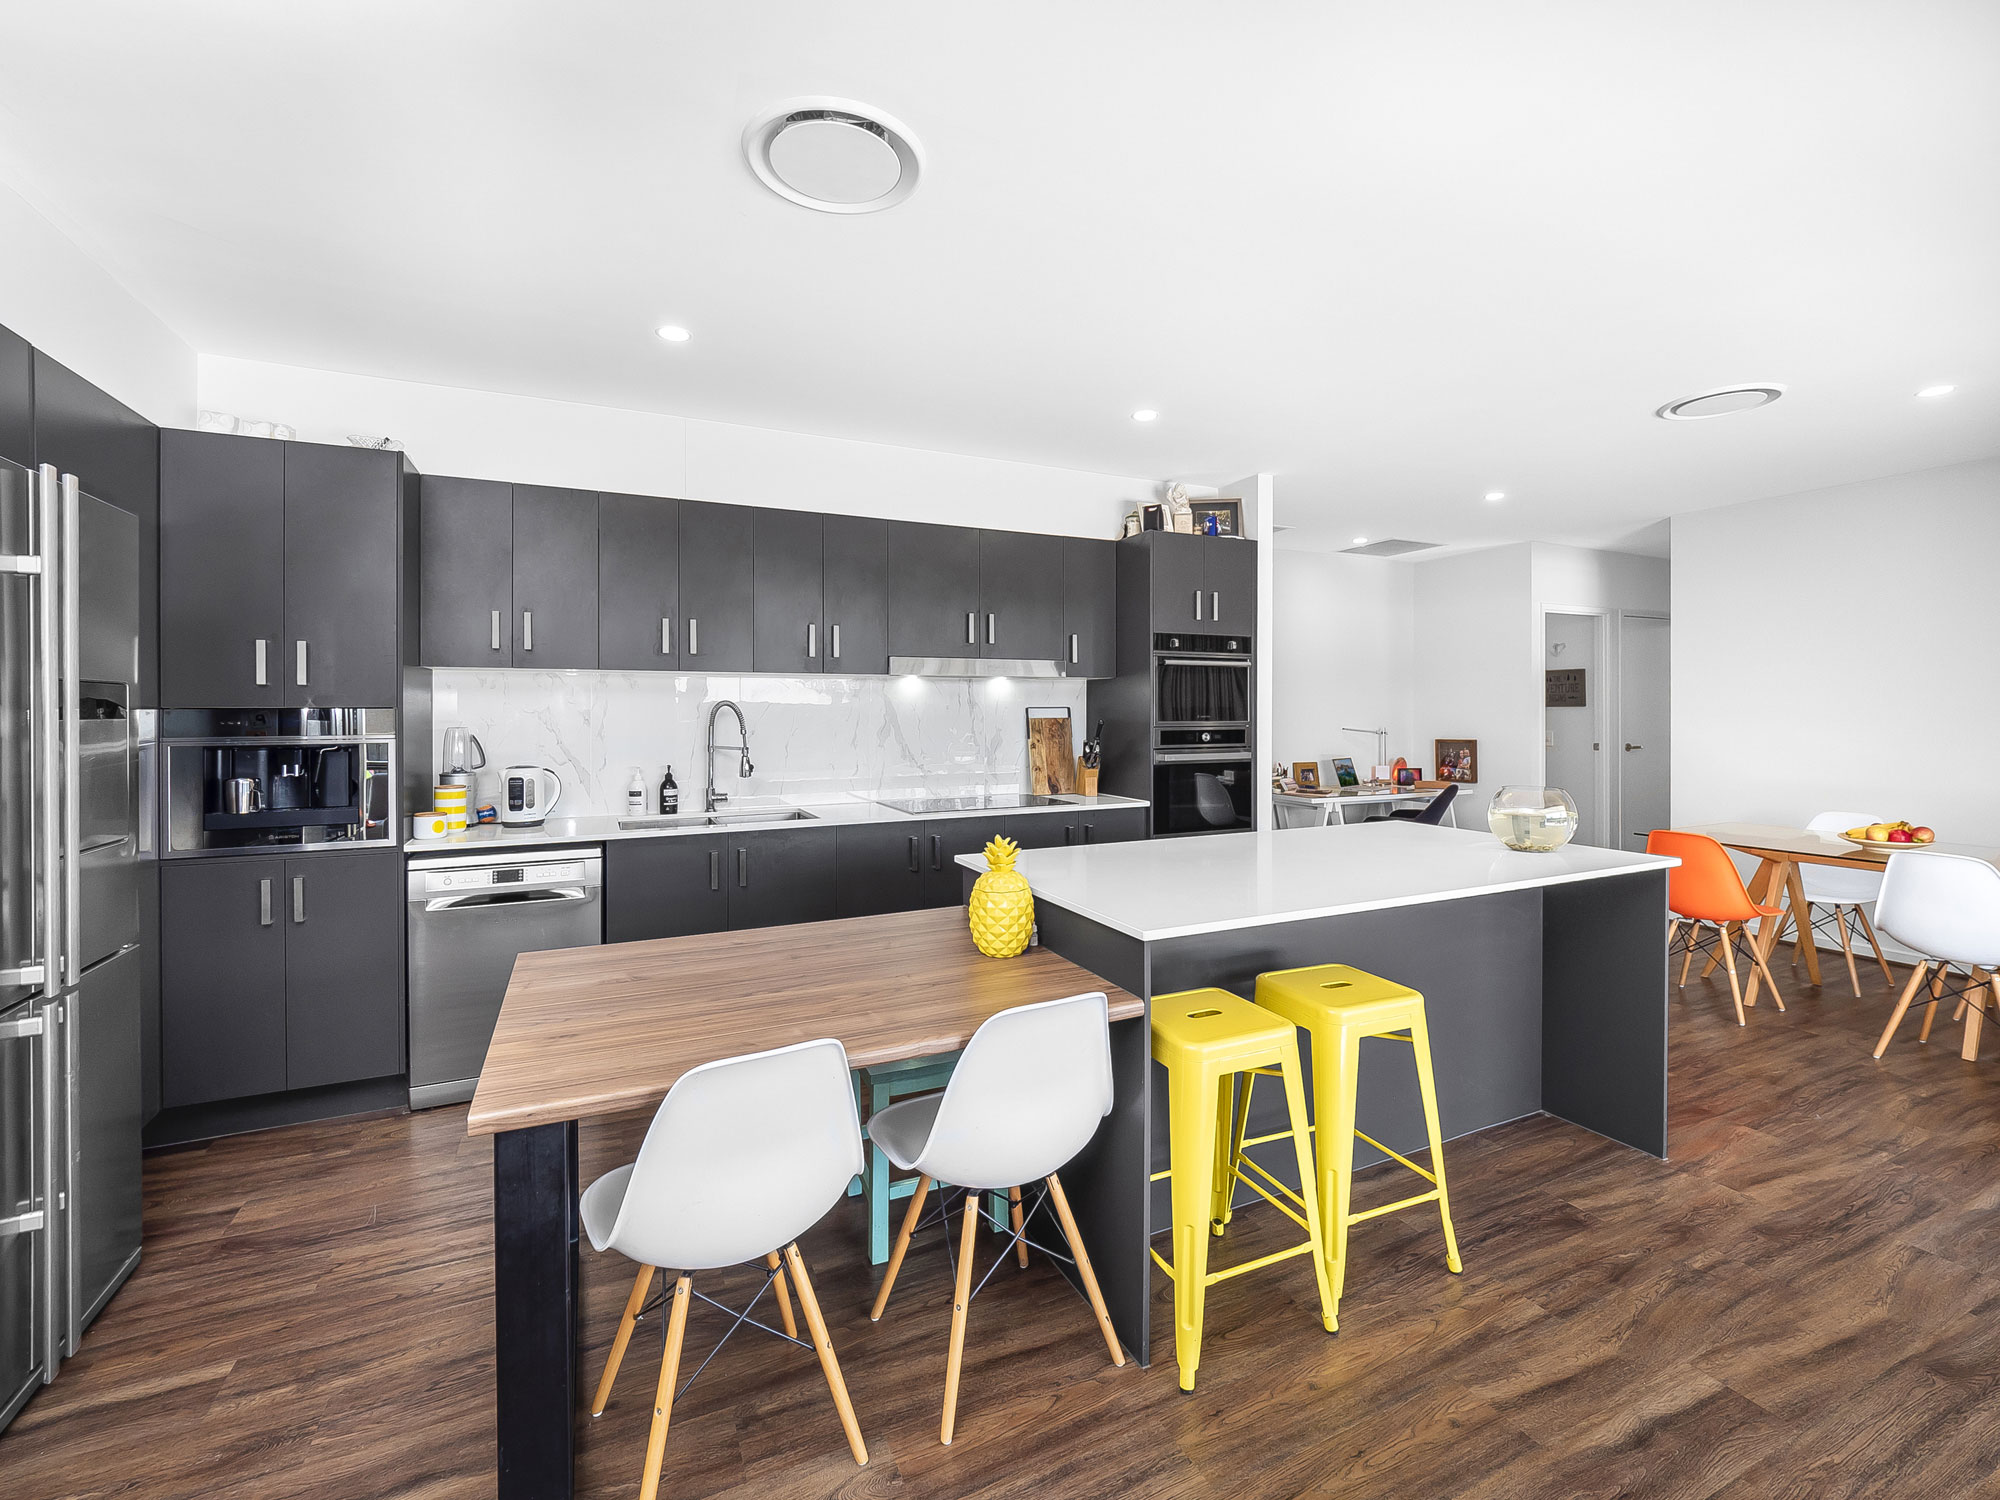 The kitchen area  - Real estate photography at Waterford